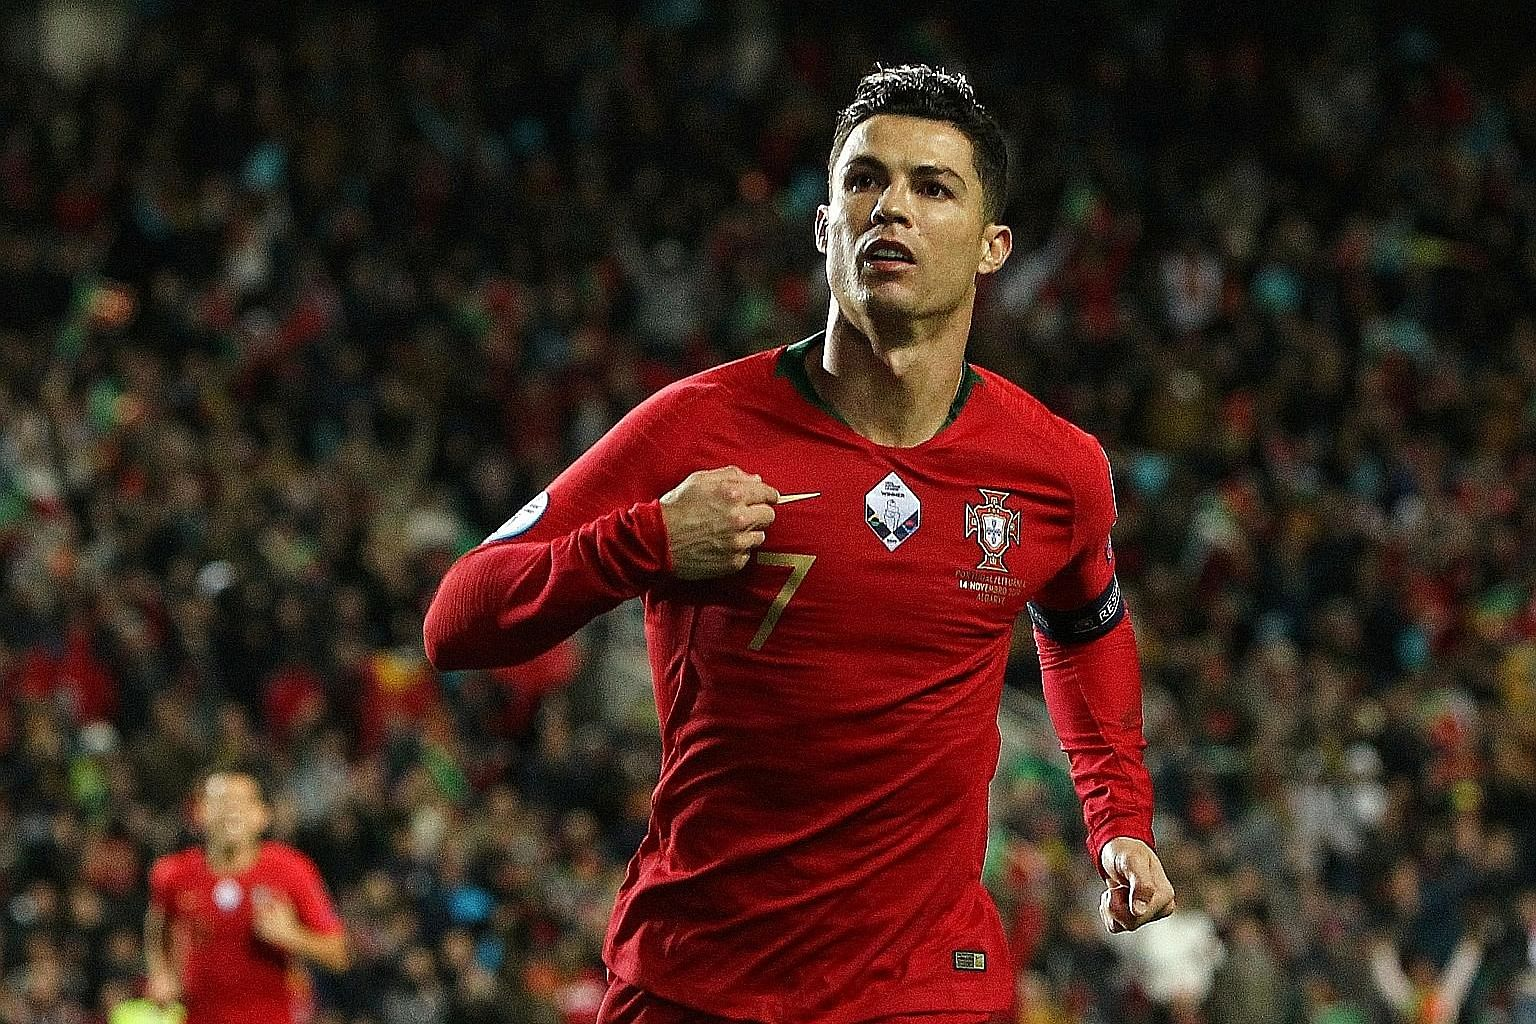 Cristiano Ronaldo's hat-trick against Lithuania was his ninth for Portugal and put him on 98 international goals.